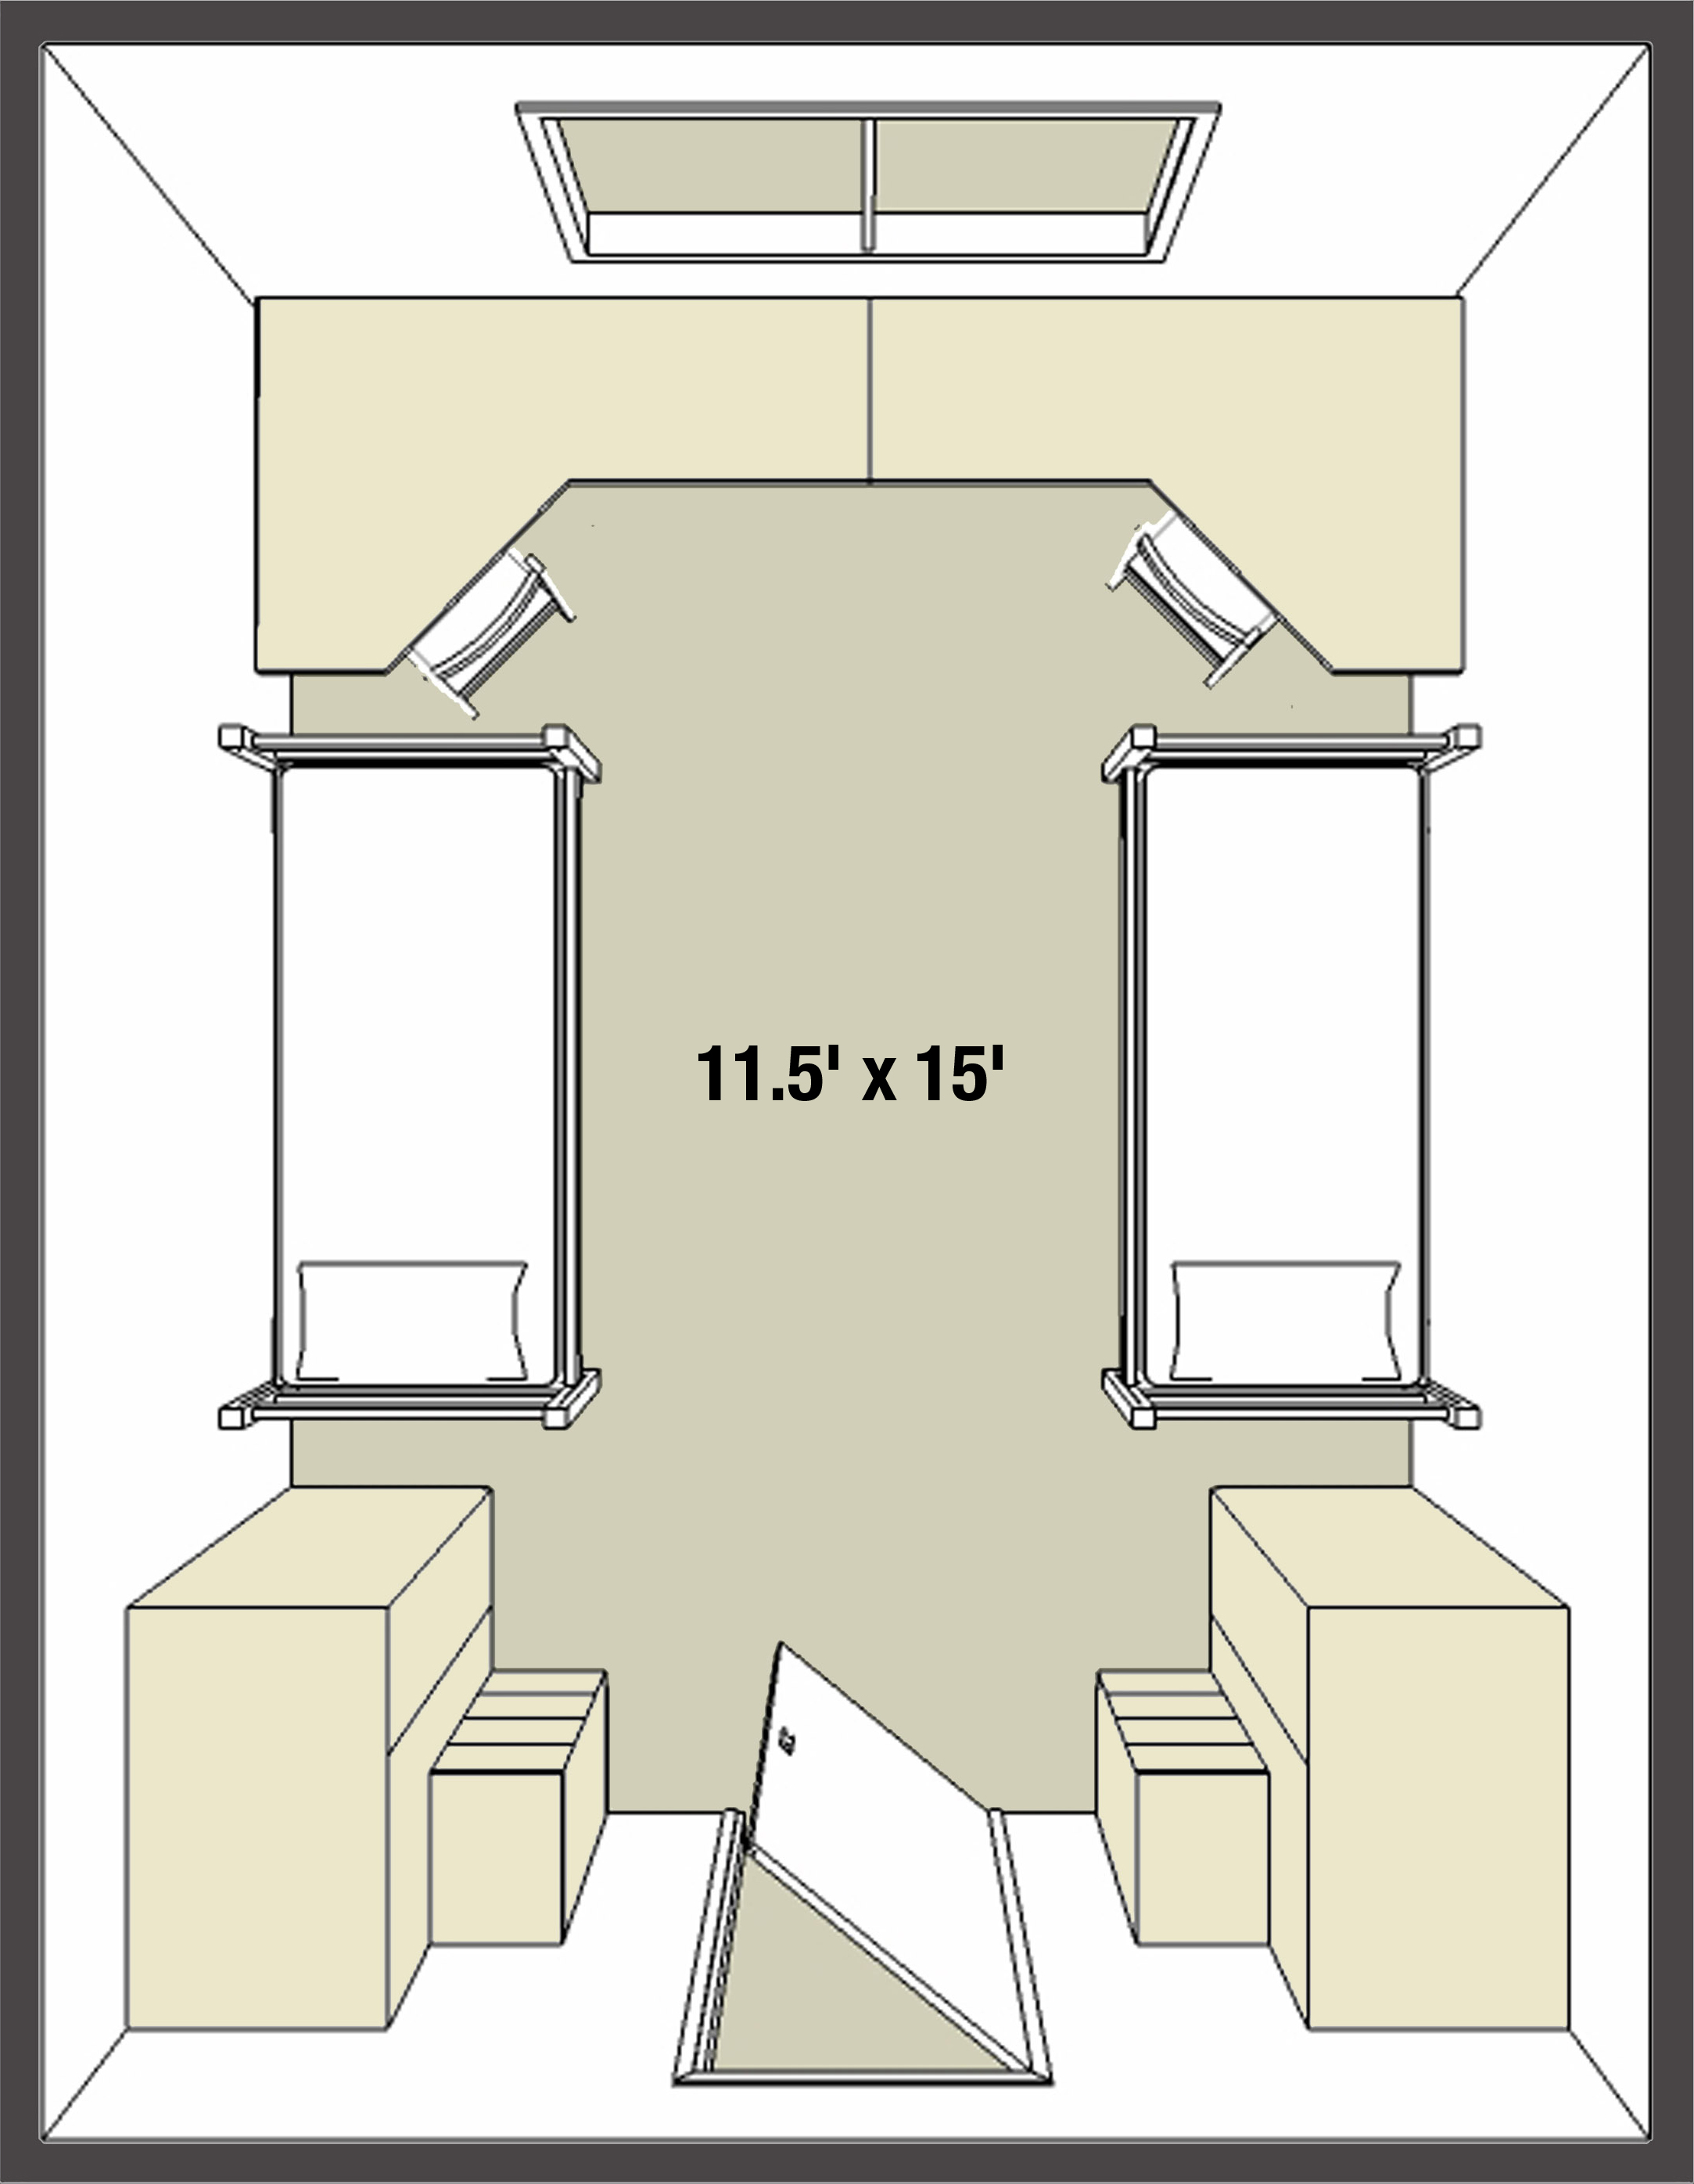 Forest Halls dorm room basic layout example I, double room